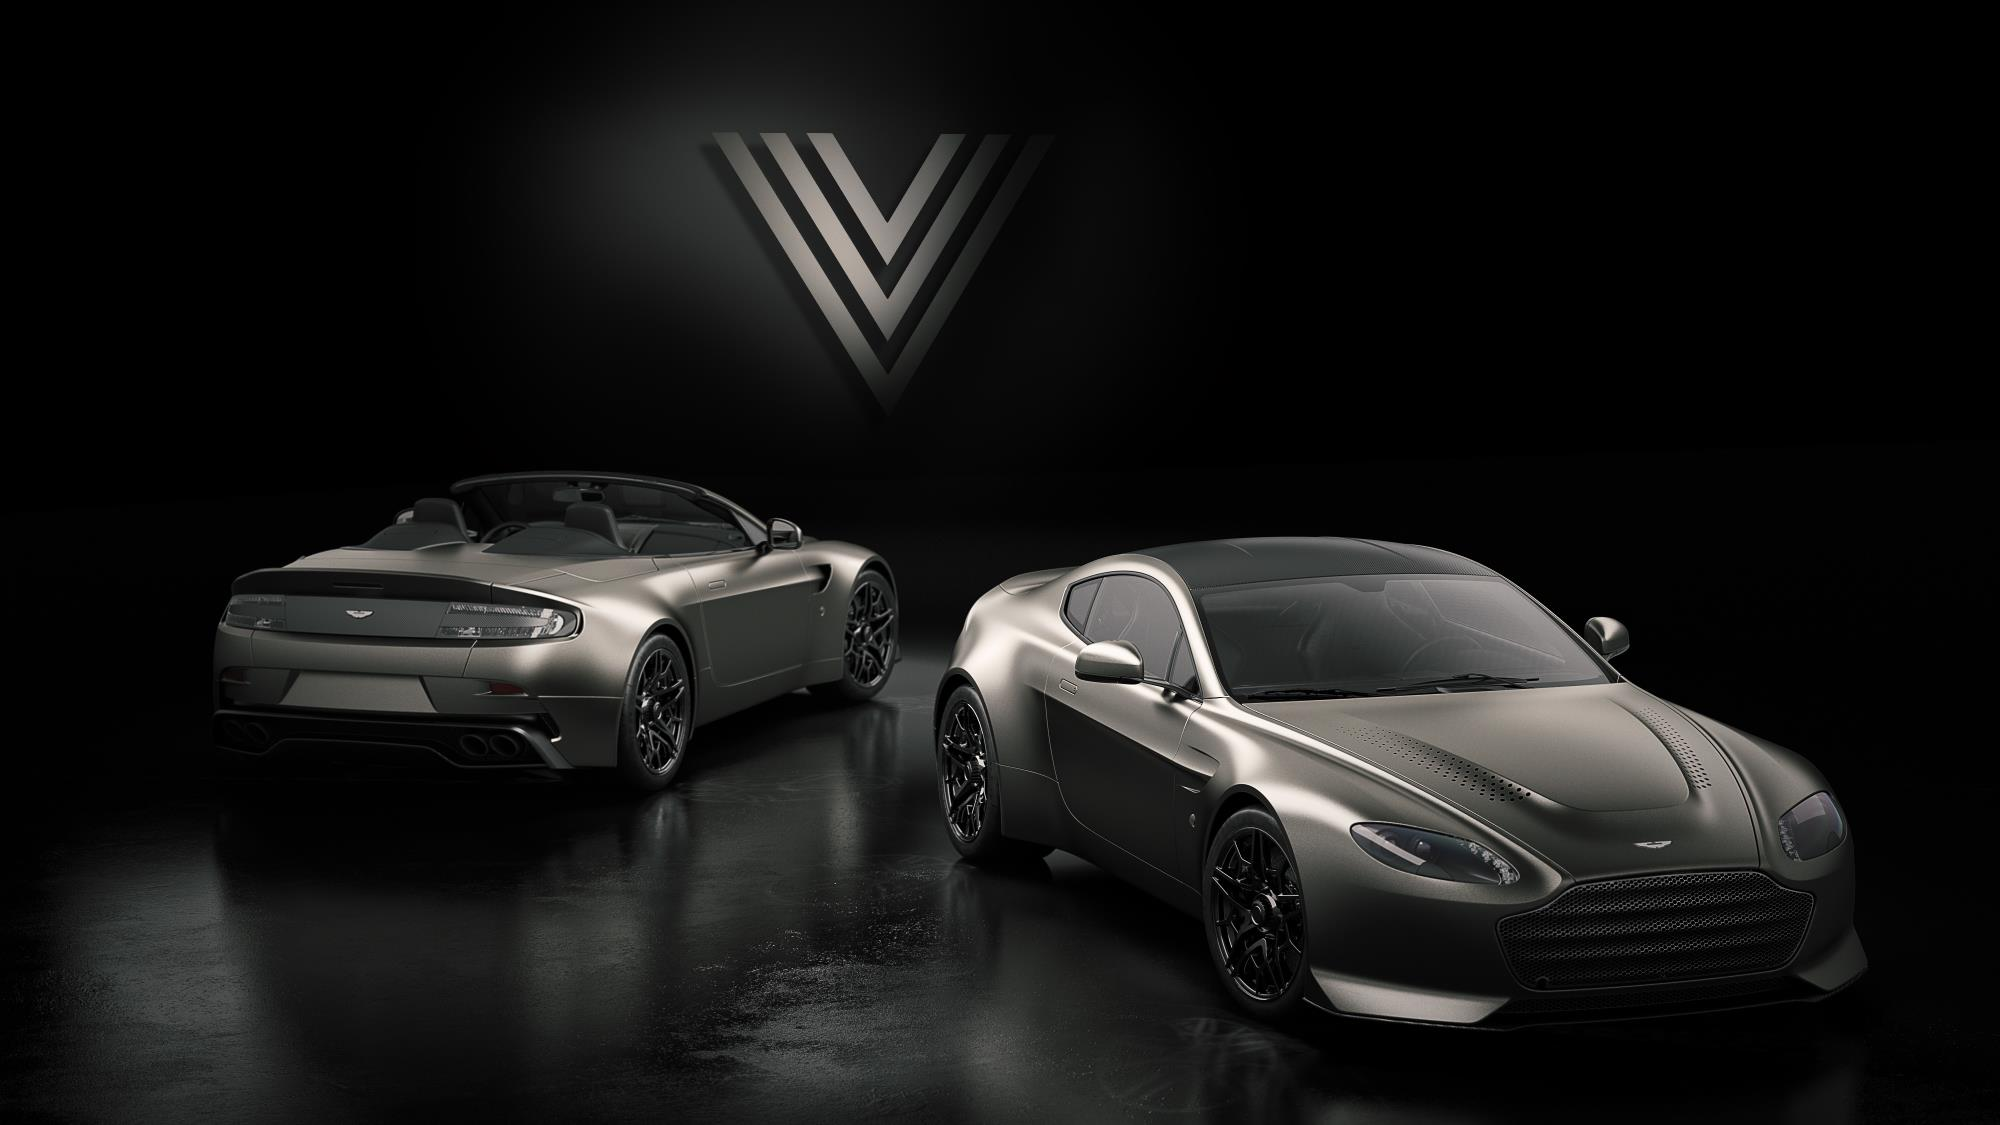 aston martin v12 vantage v600 edition recreates an icon performancedrive. Black Bedroom Furniture Sets. Home Design Ideas